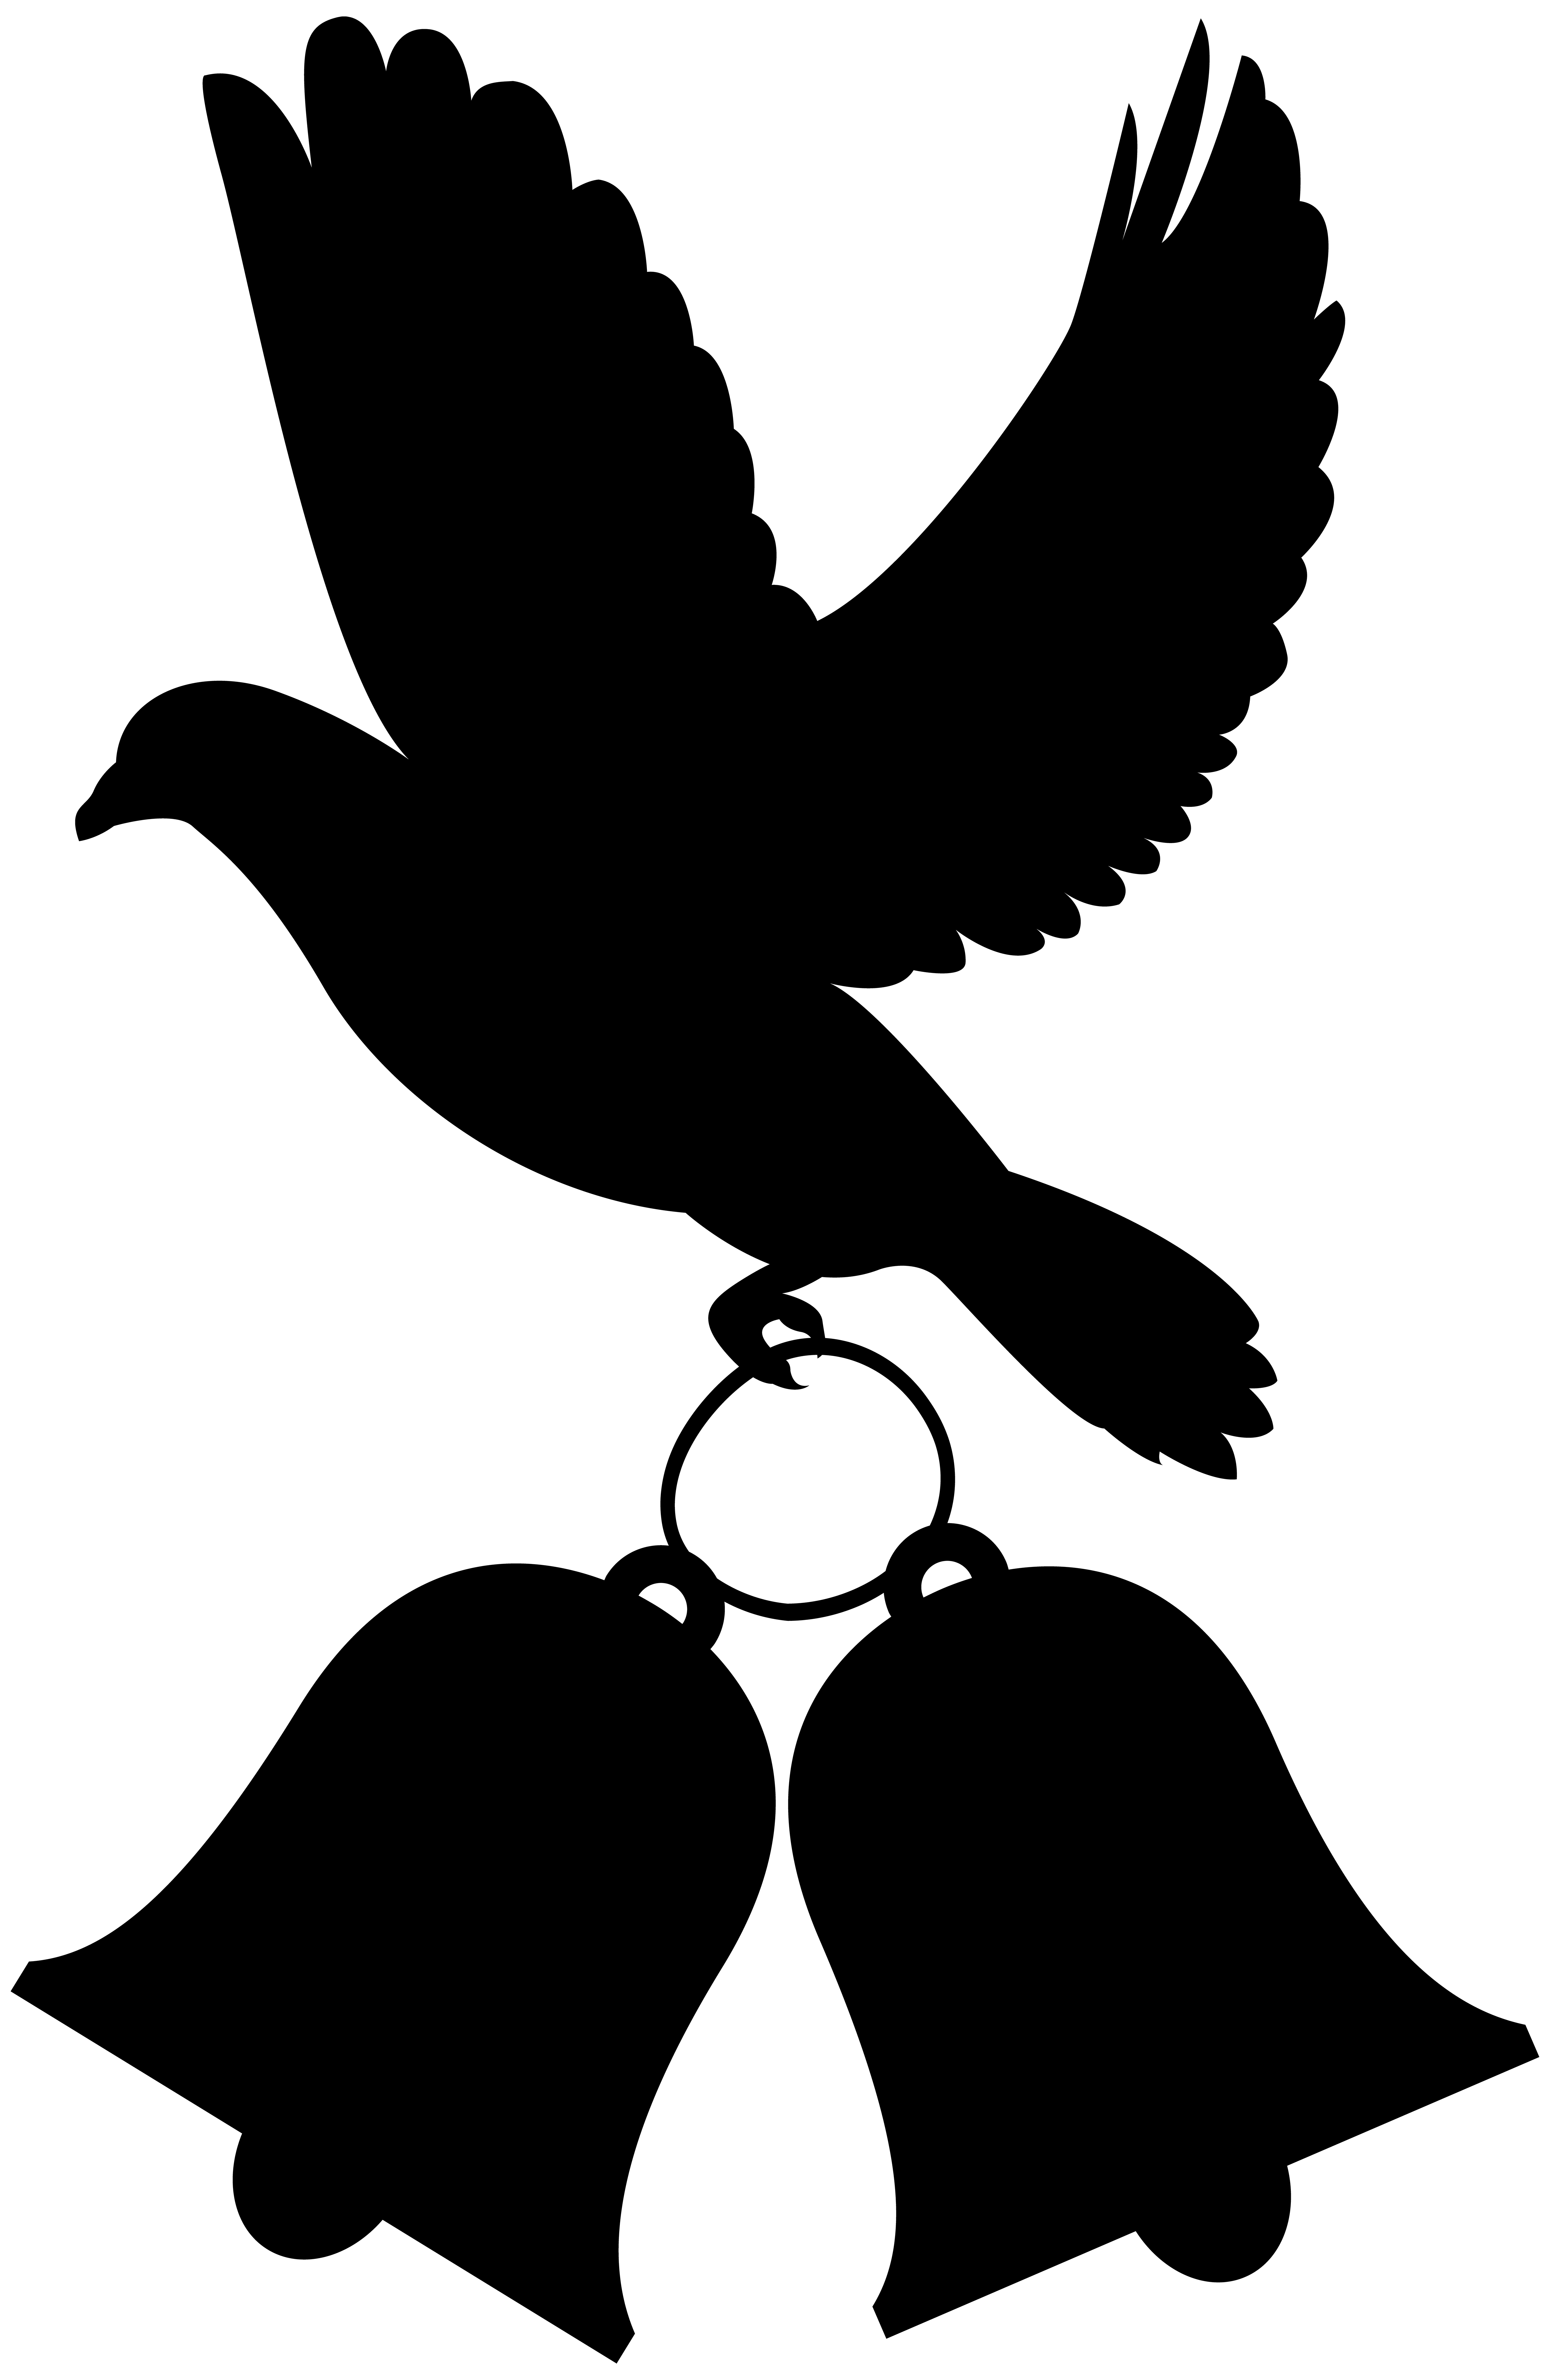 Raven clipart outstretched wing. Clip art png